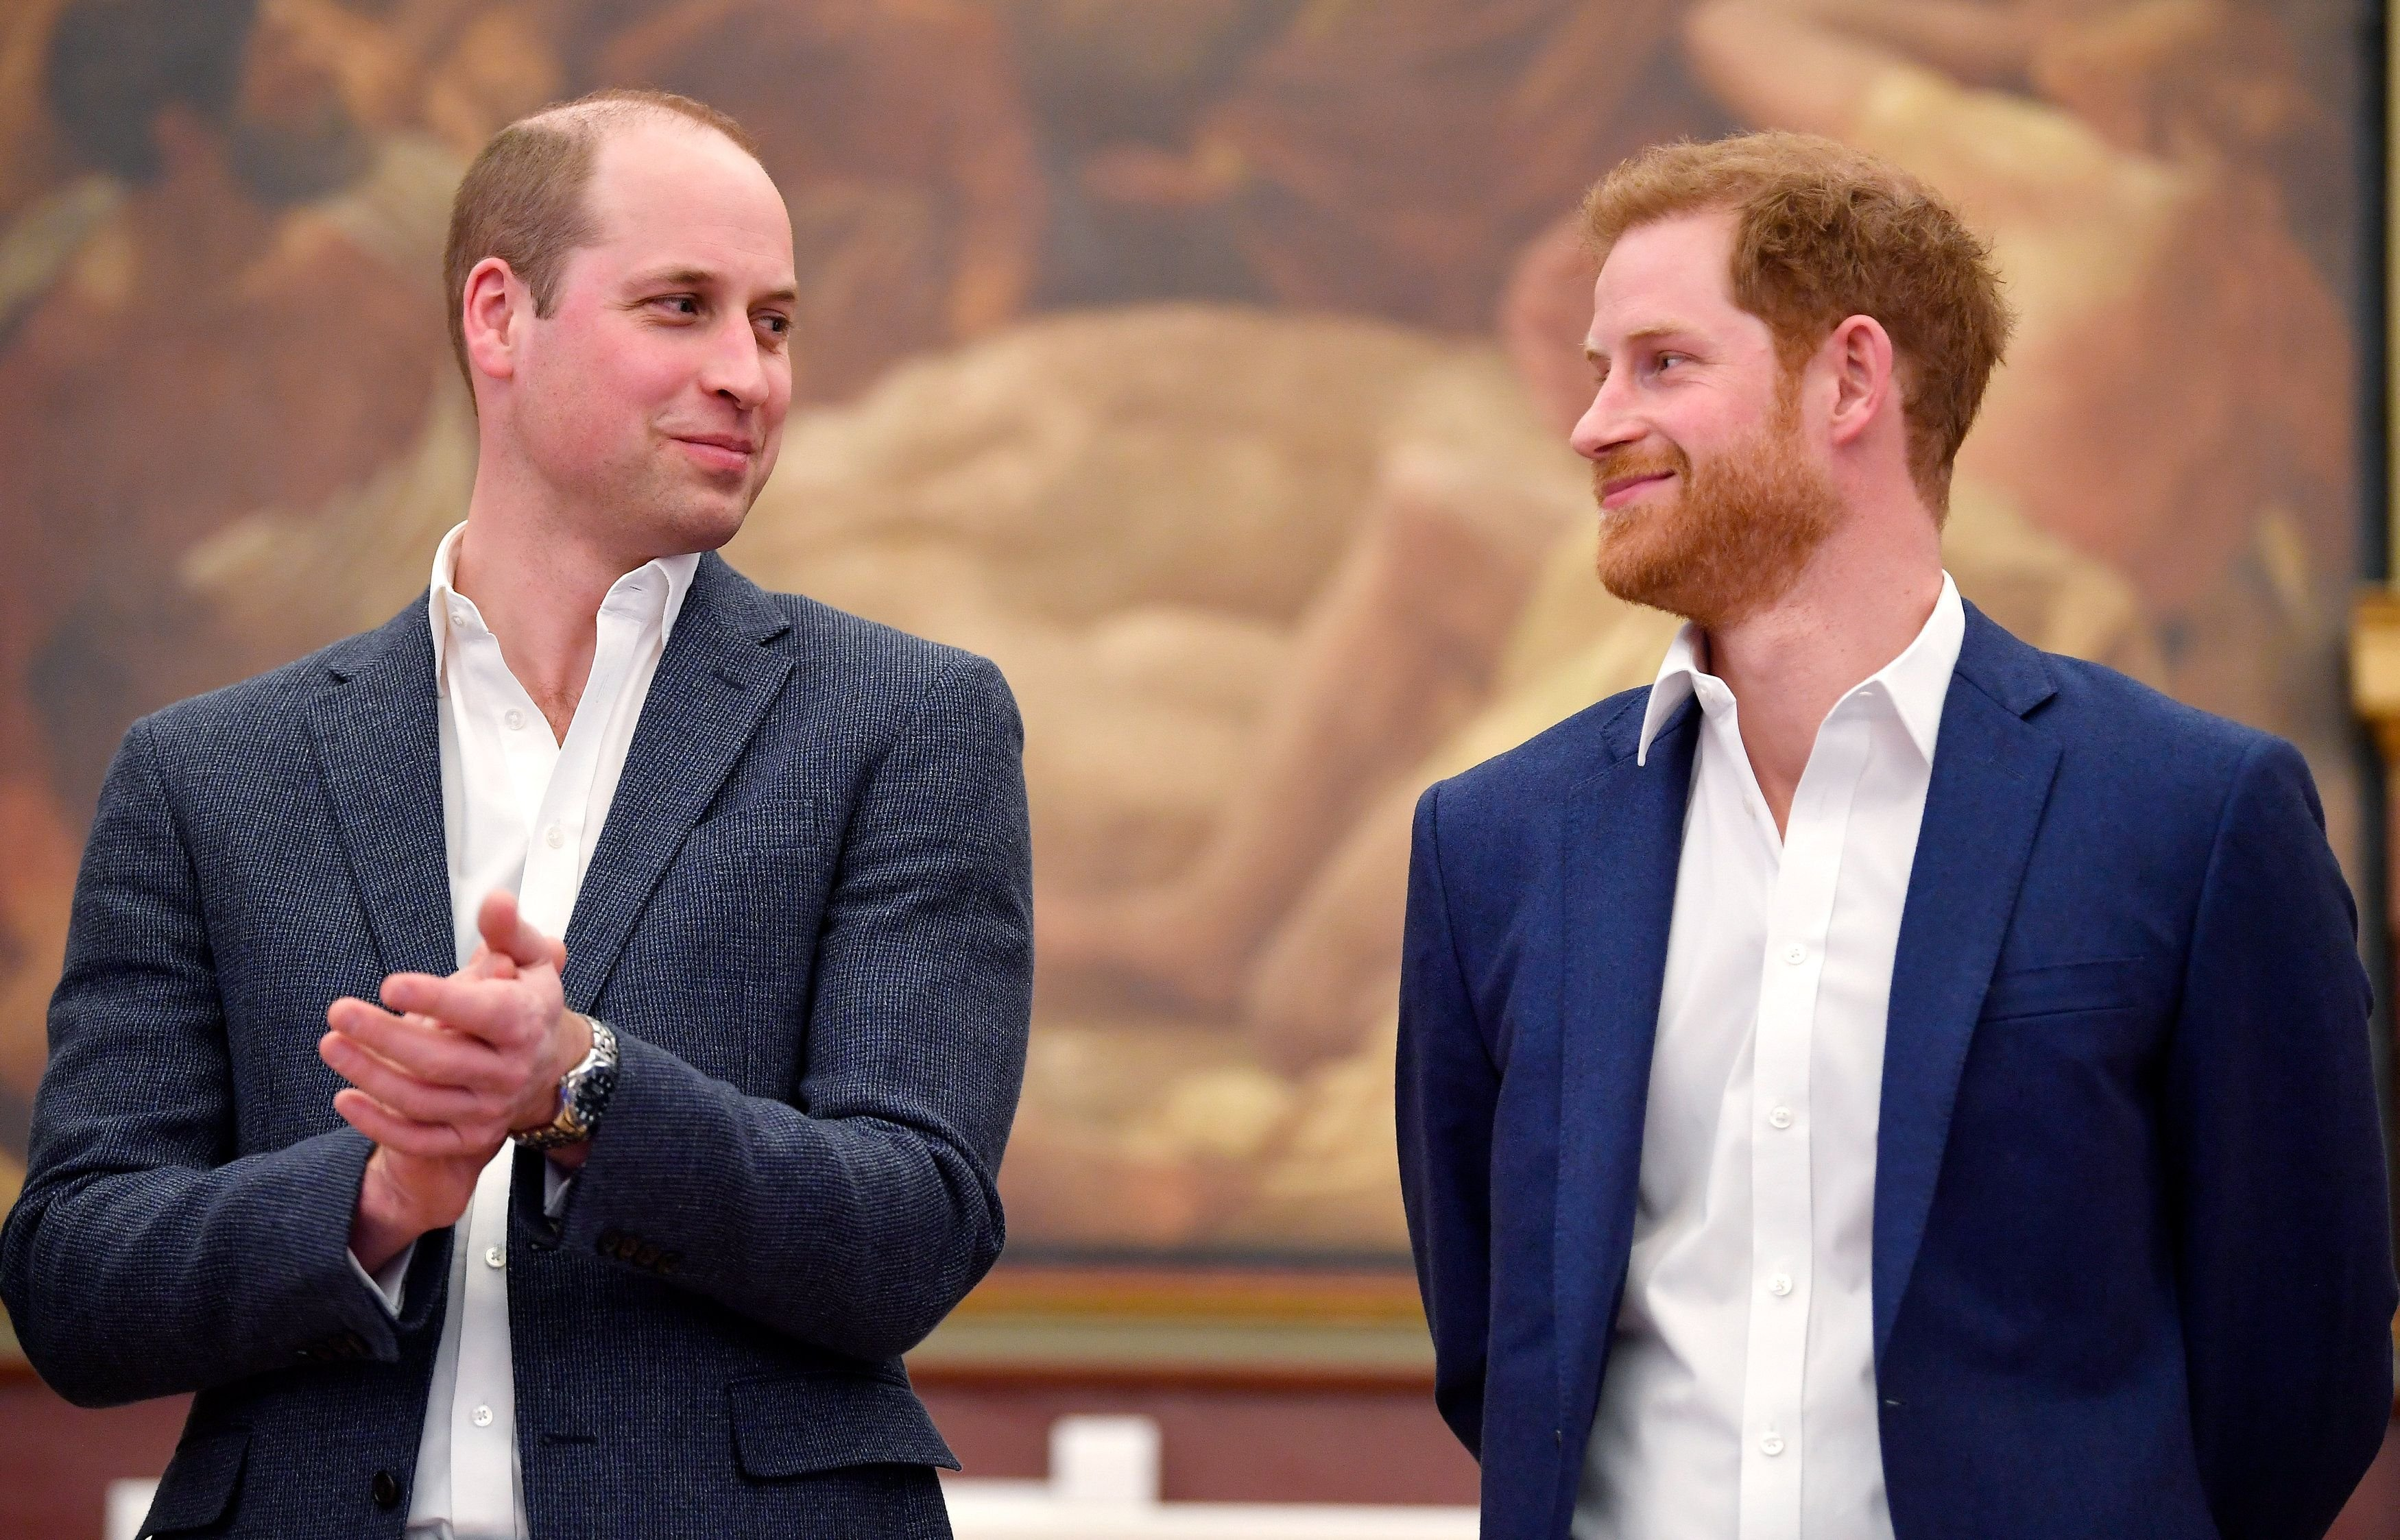 Prince William and Prince Harry at the opening of the Greenhouse Sports Centre on April 26, 2018   Photo: Getty Images